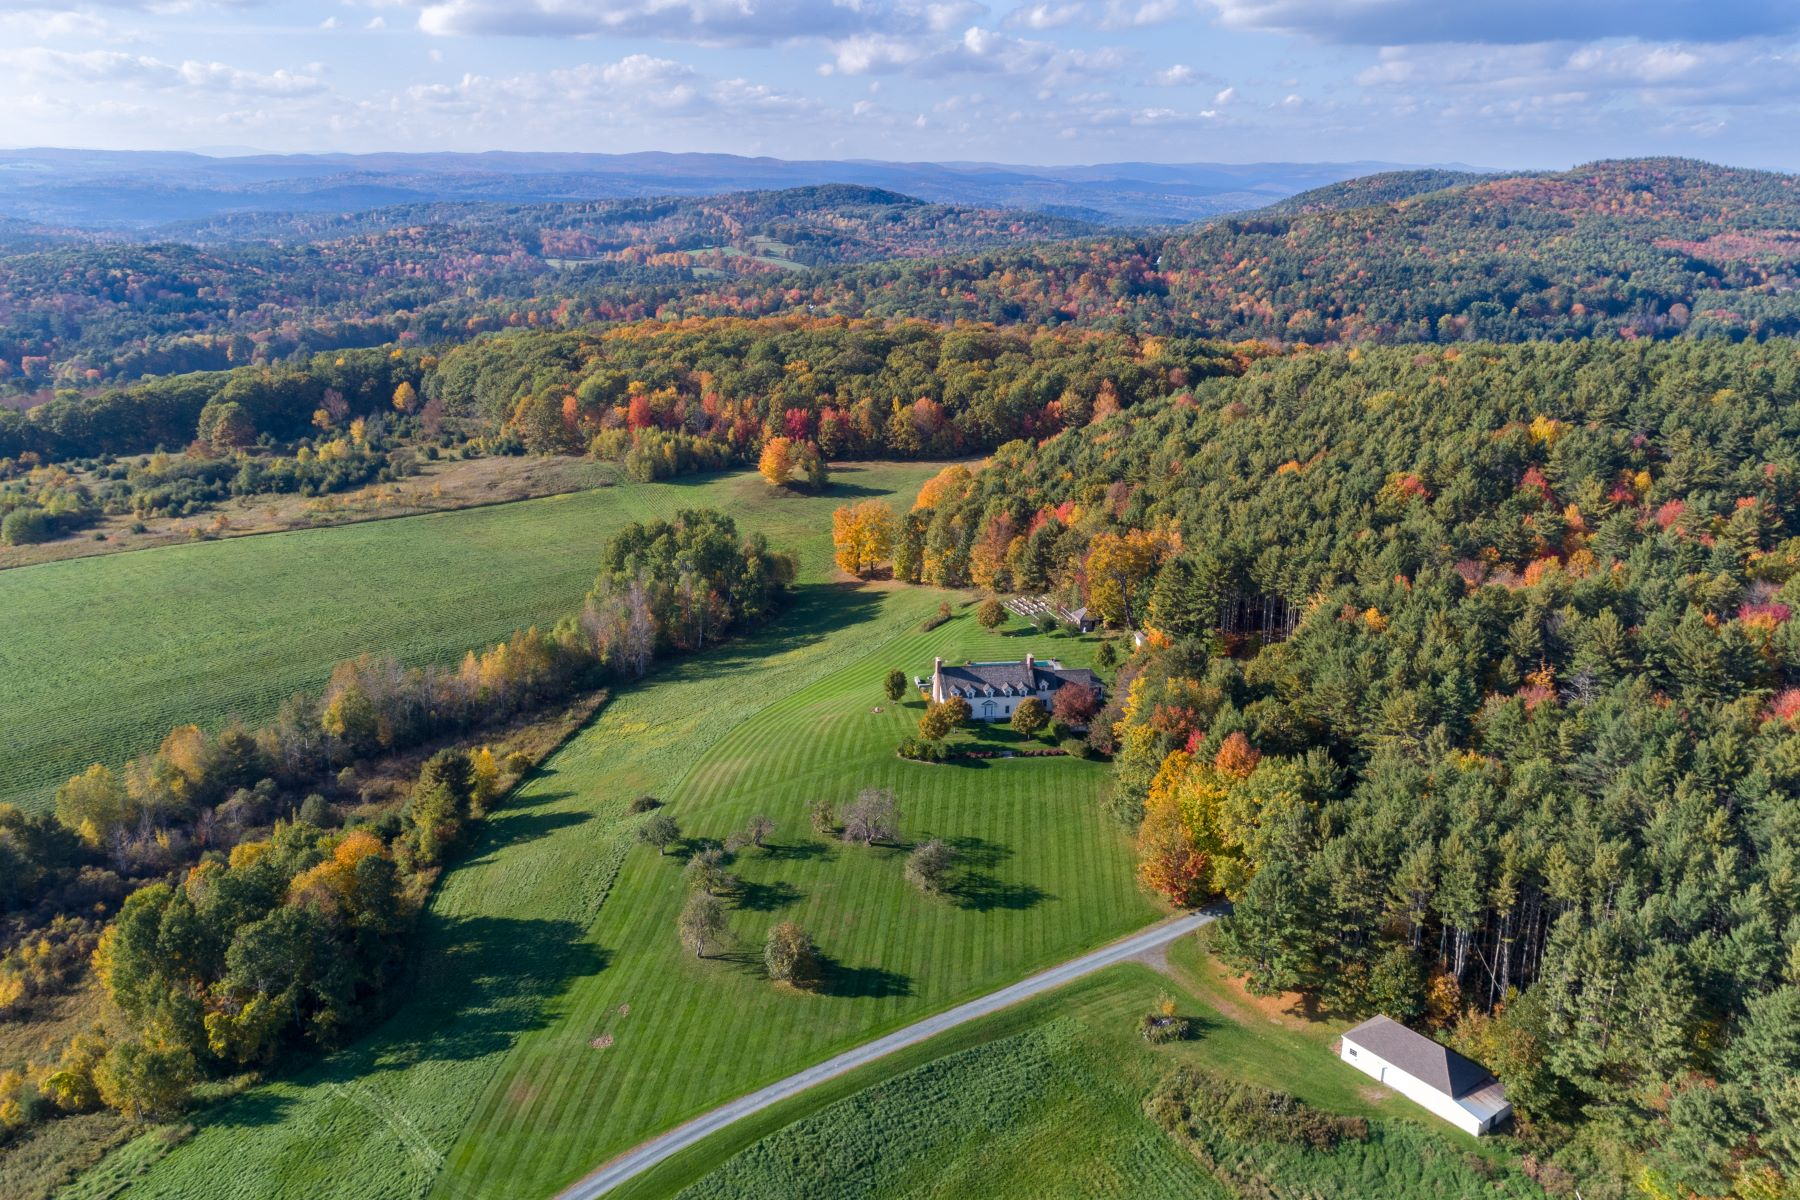 Single Family Home for Sale at Mountaintop Serenity 16 Chandler Rd Hanover, New Hampshire 03755 United States